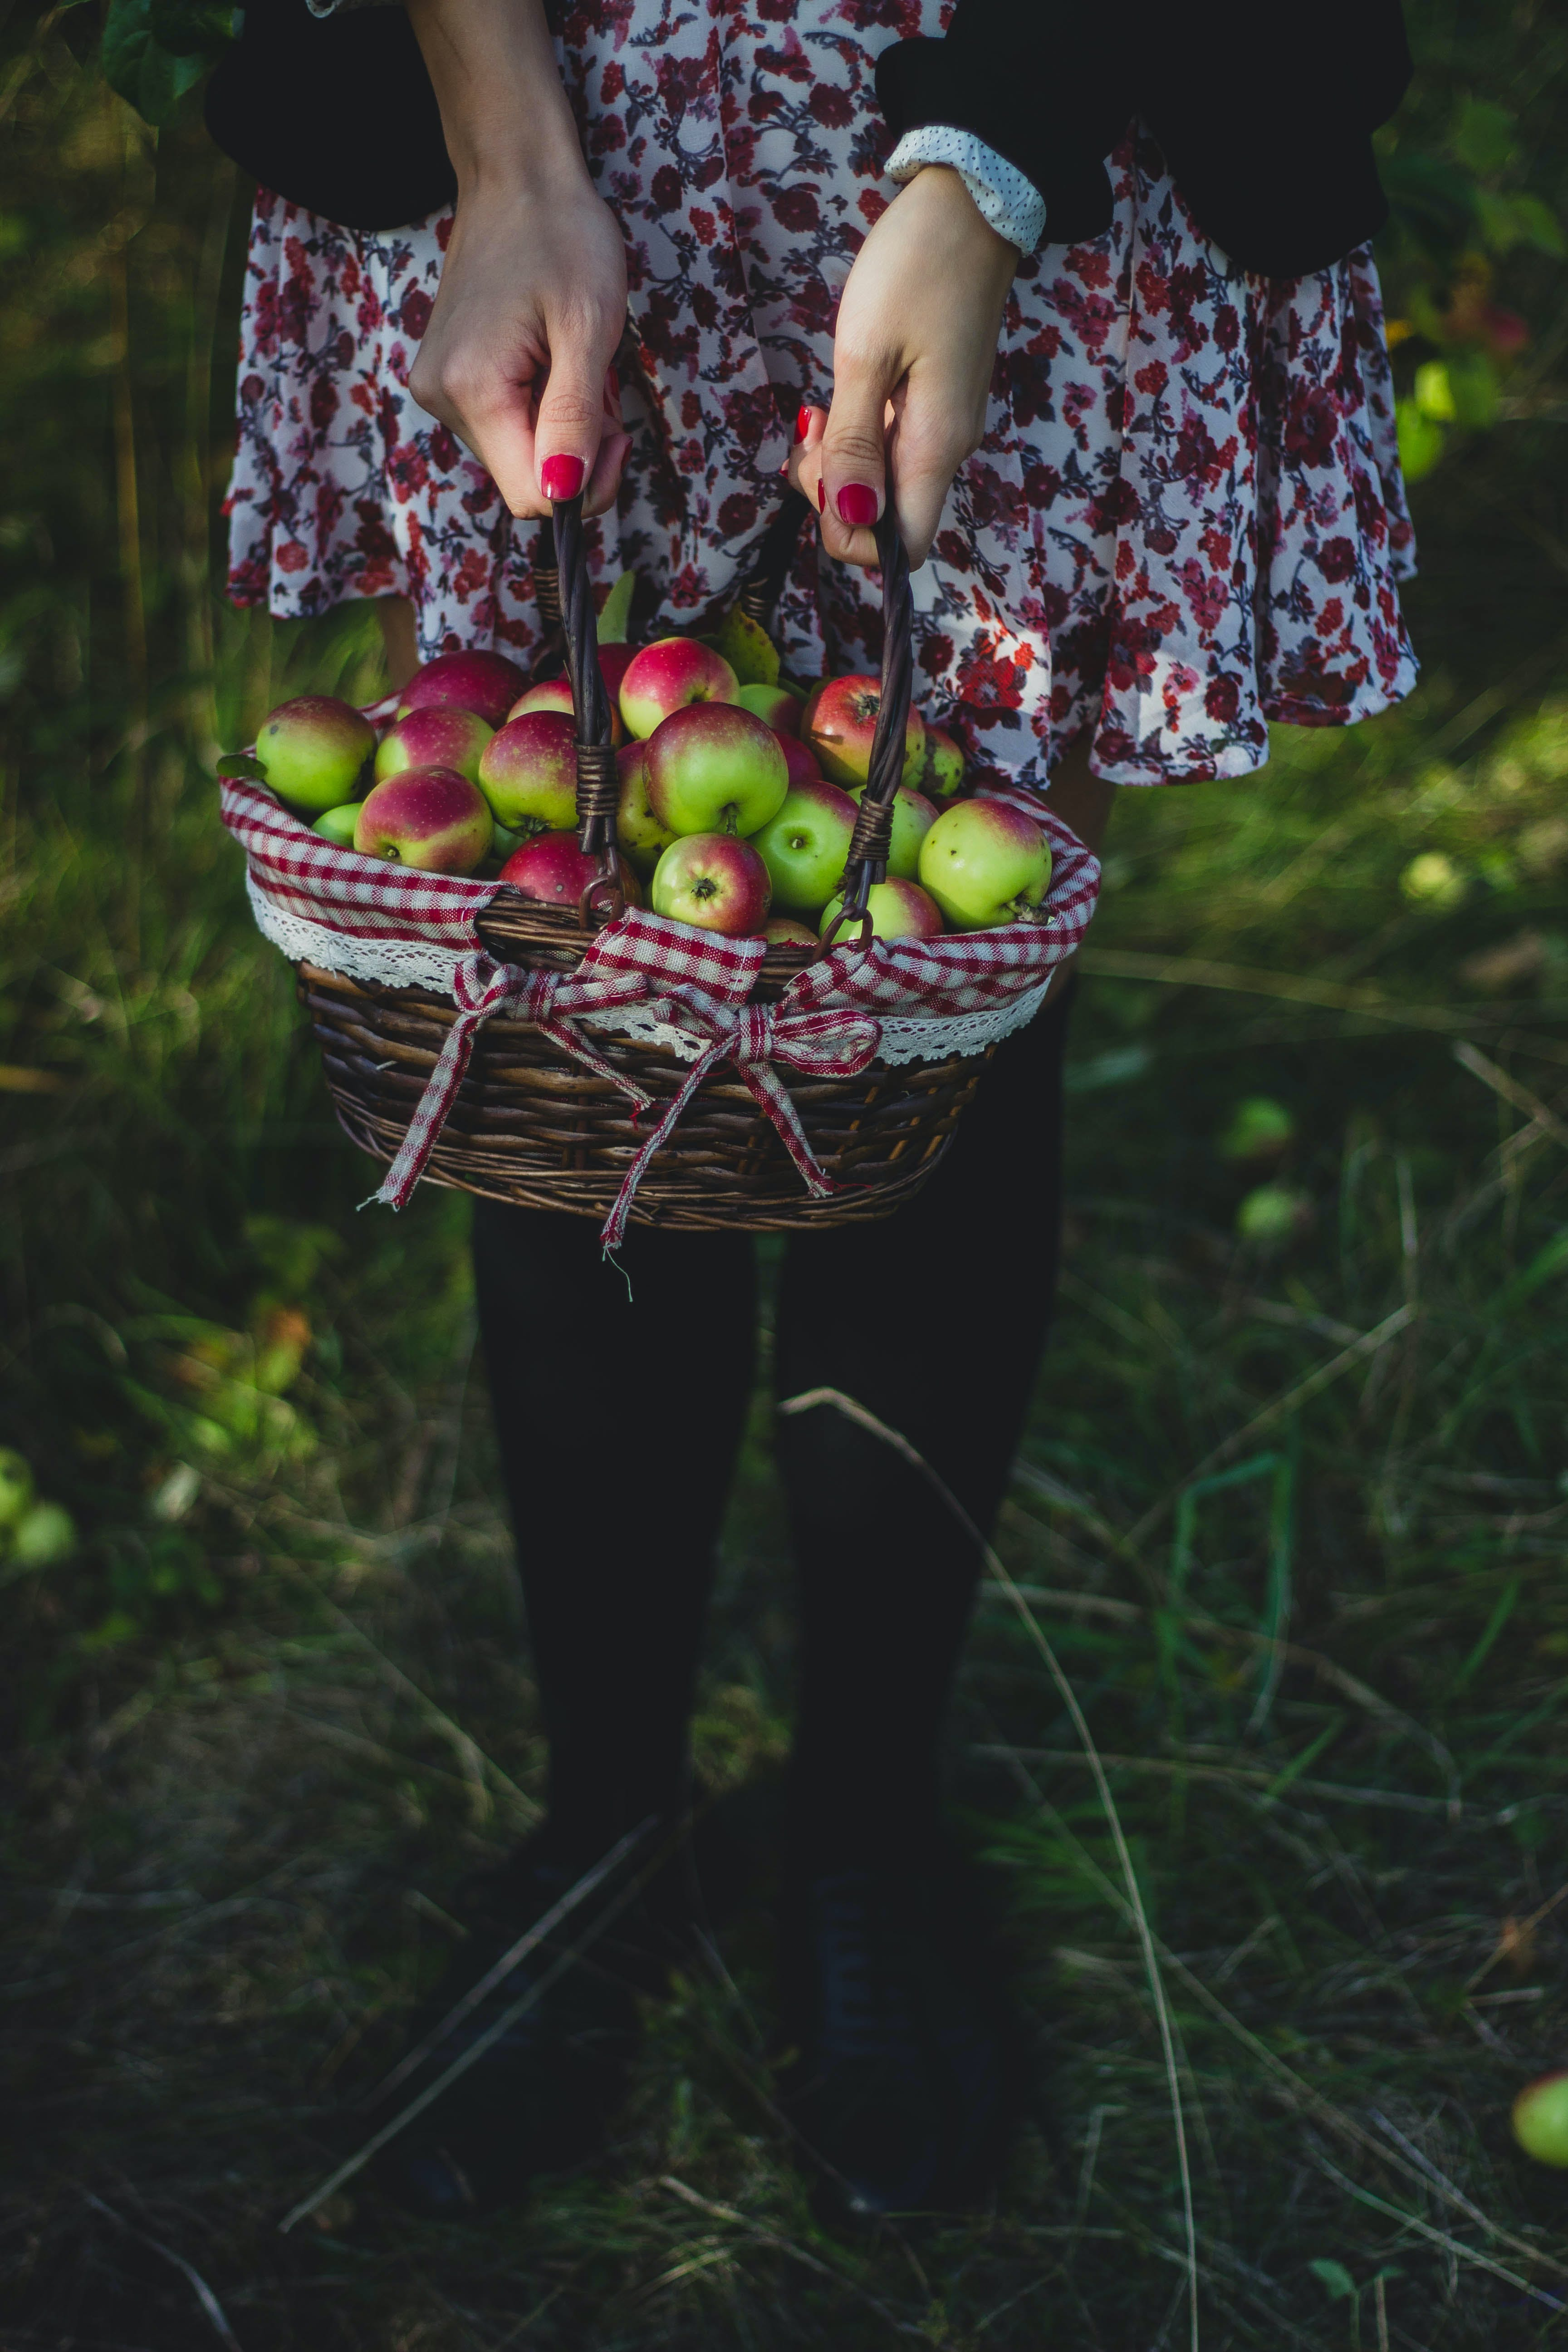 Free stock photo of healthy, fruits, apples, basket